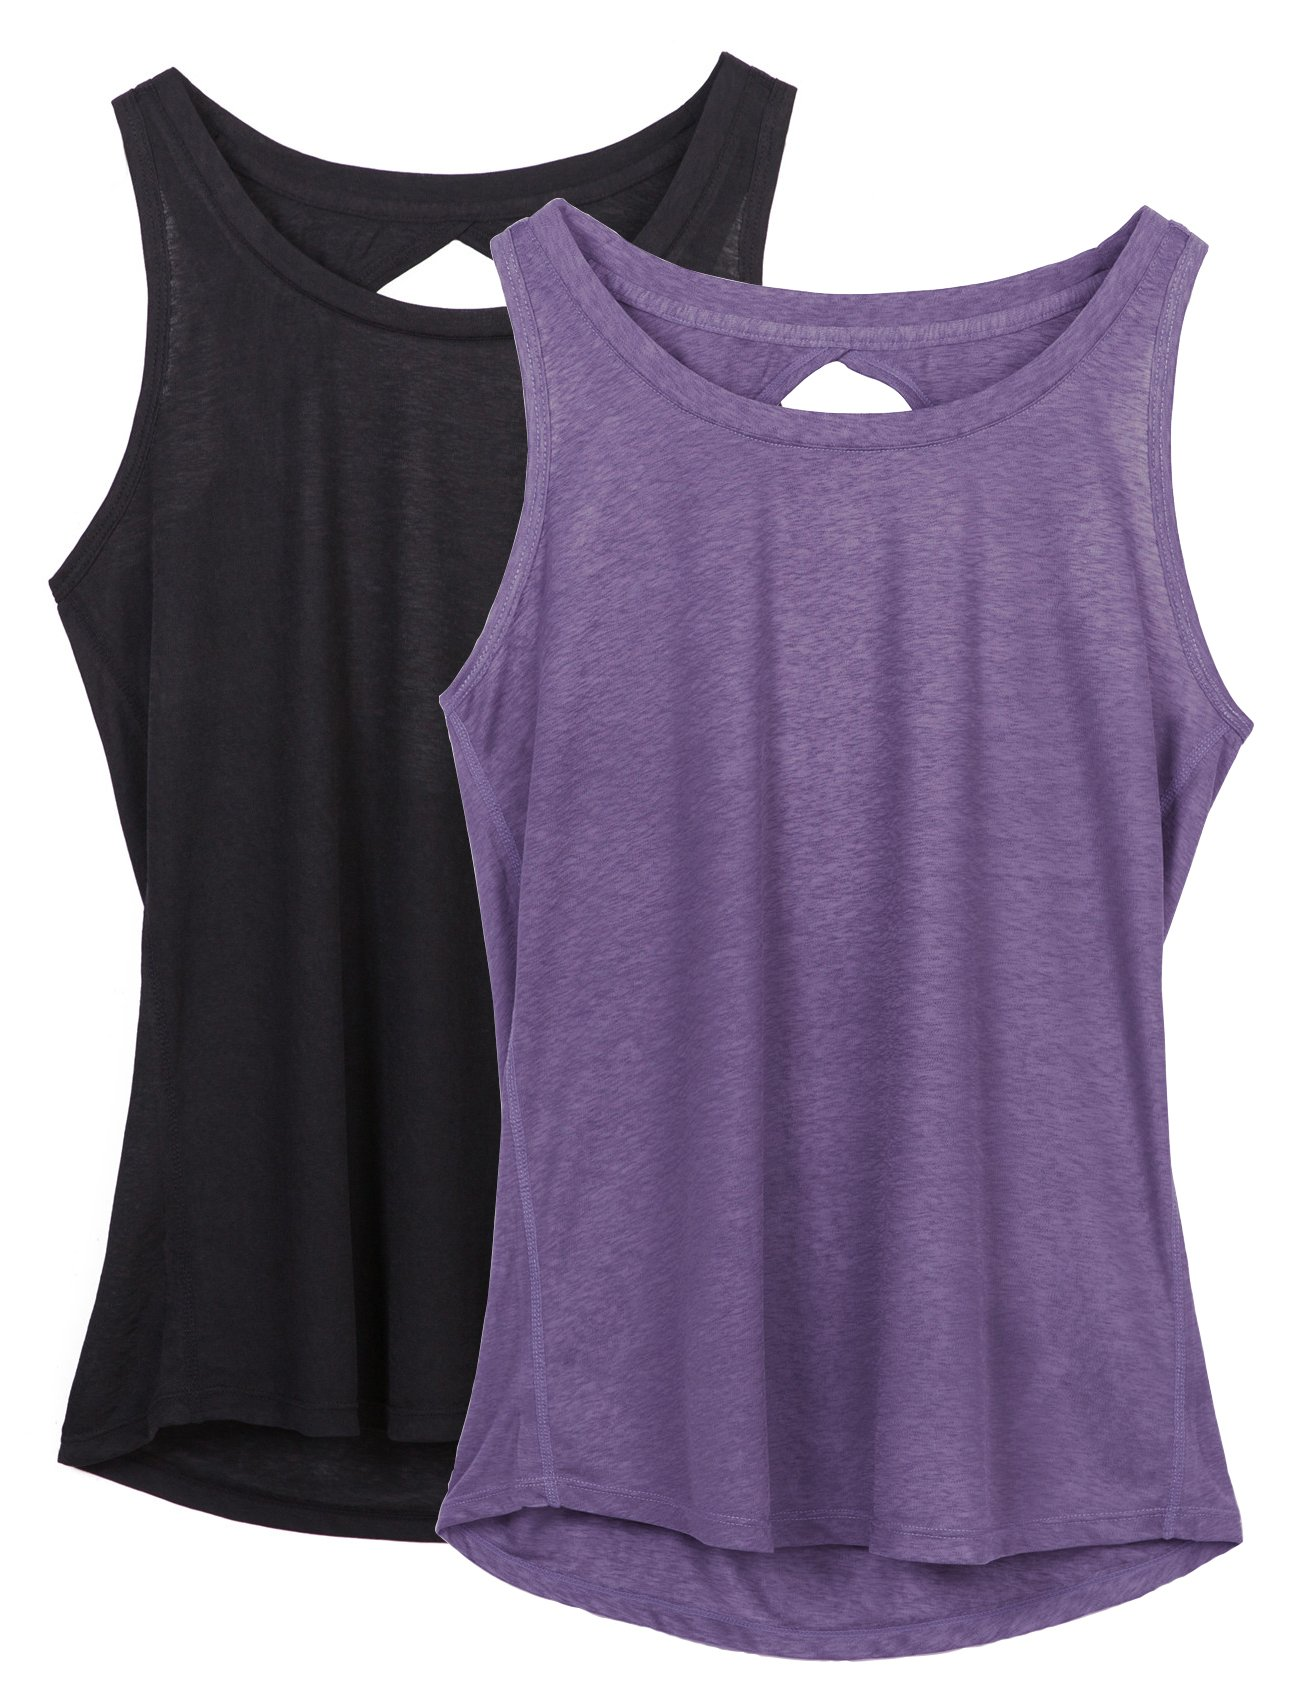 icyzone Yoga Tops Activewear Workout Clothes Open Back Fitness Racerback Tank Tops For Women(S,Black/Purple)